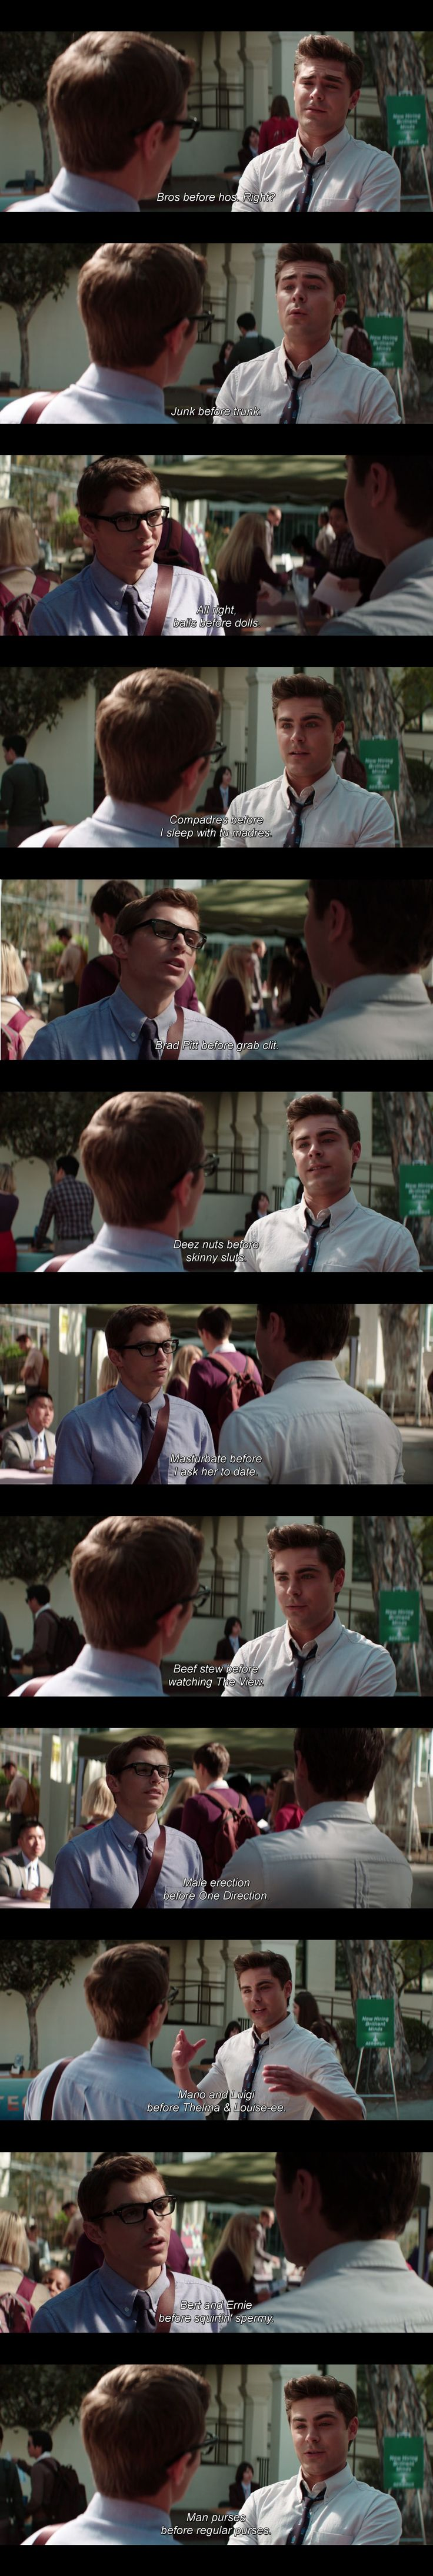 Zac Efron and Dave Franco in Neighbors glasses actually suit Davey there cute and a little sexy